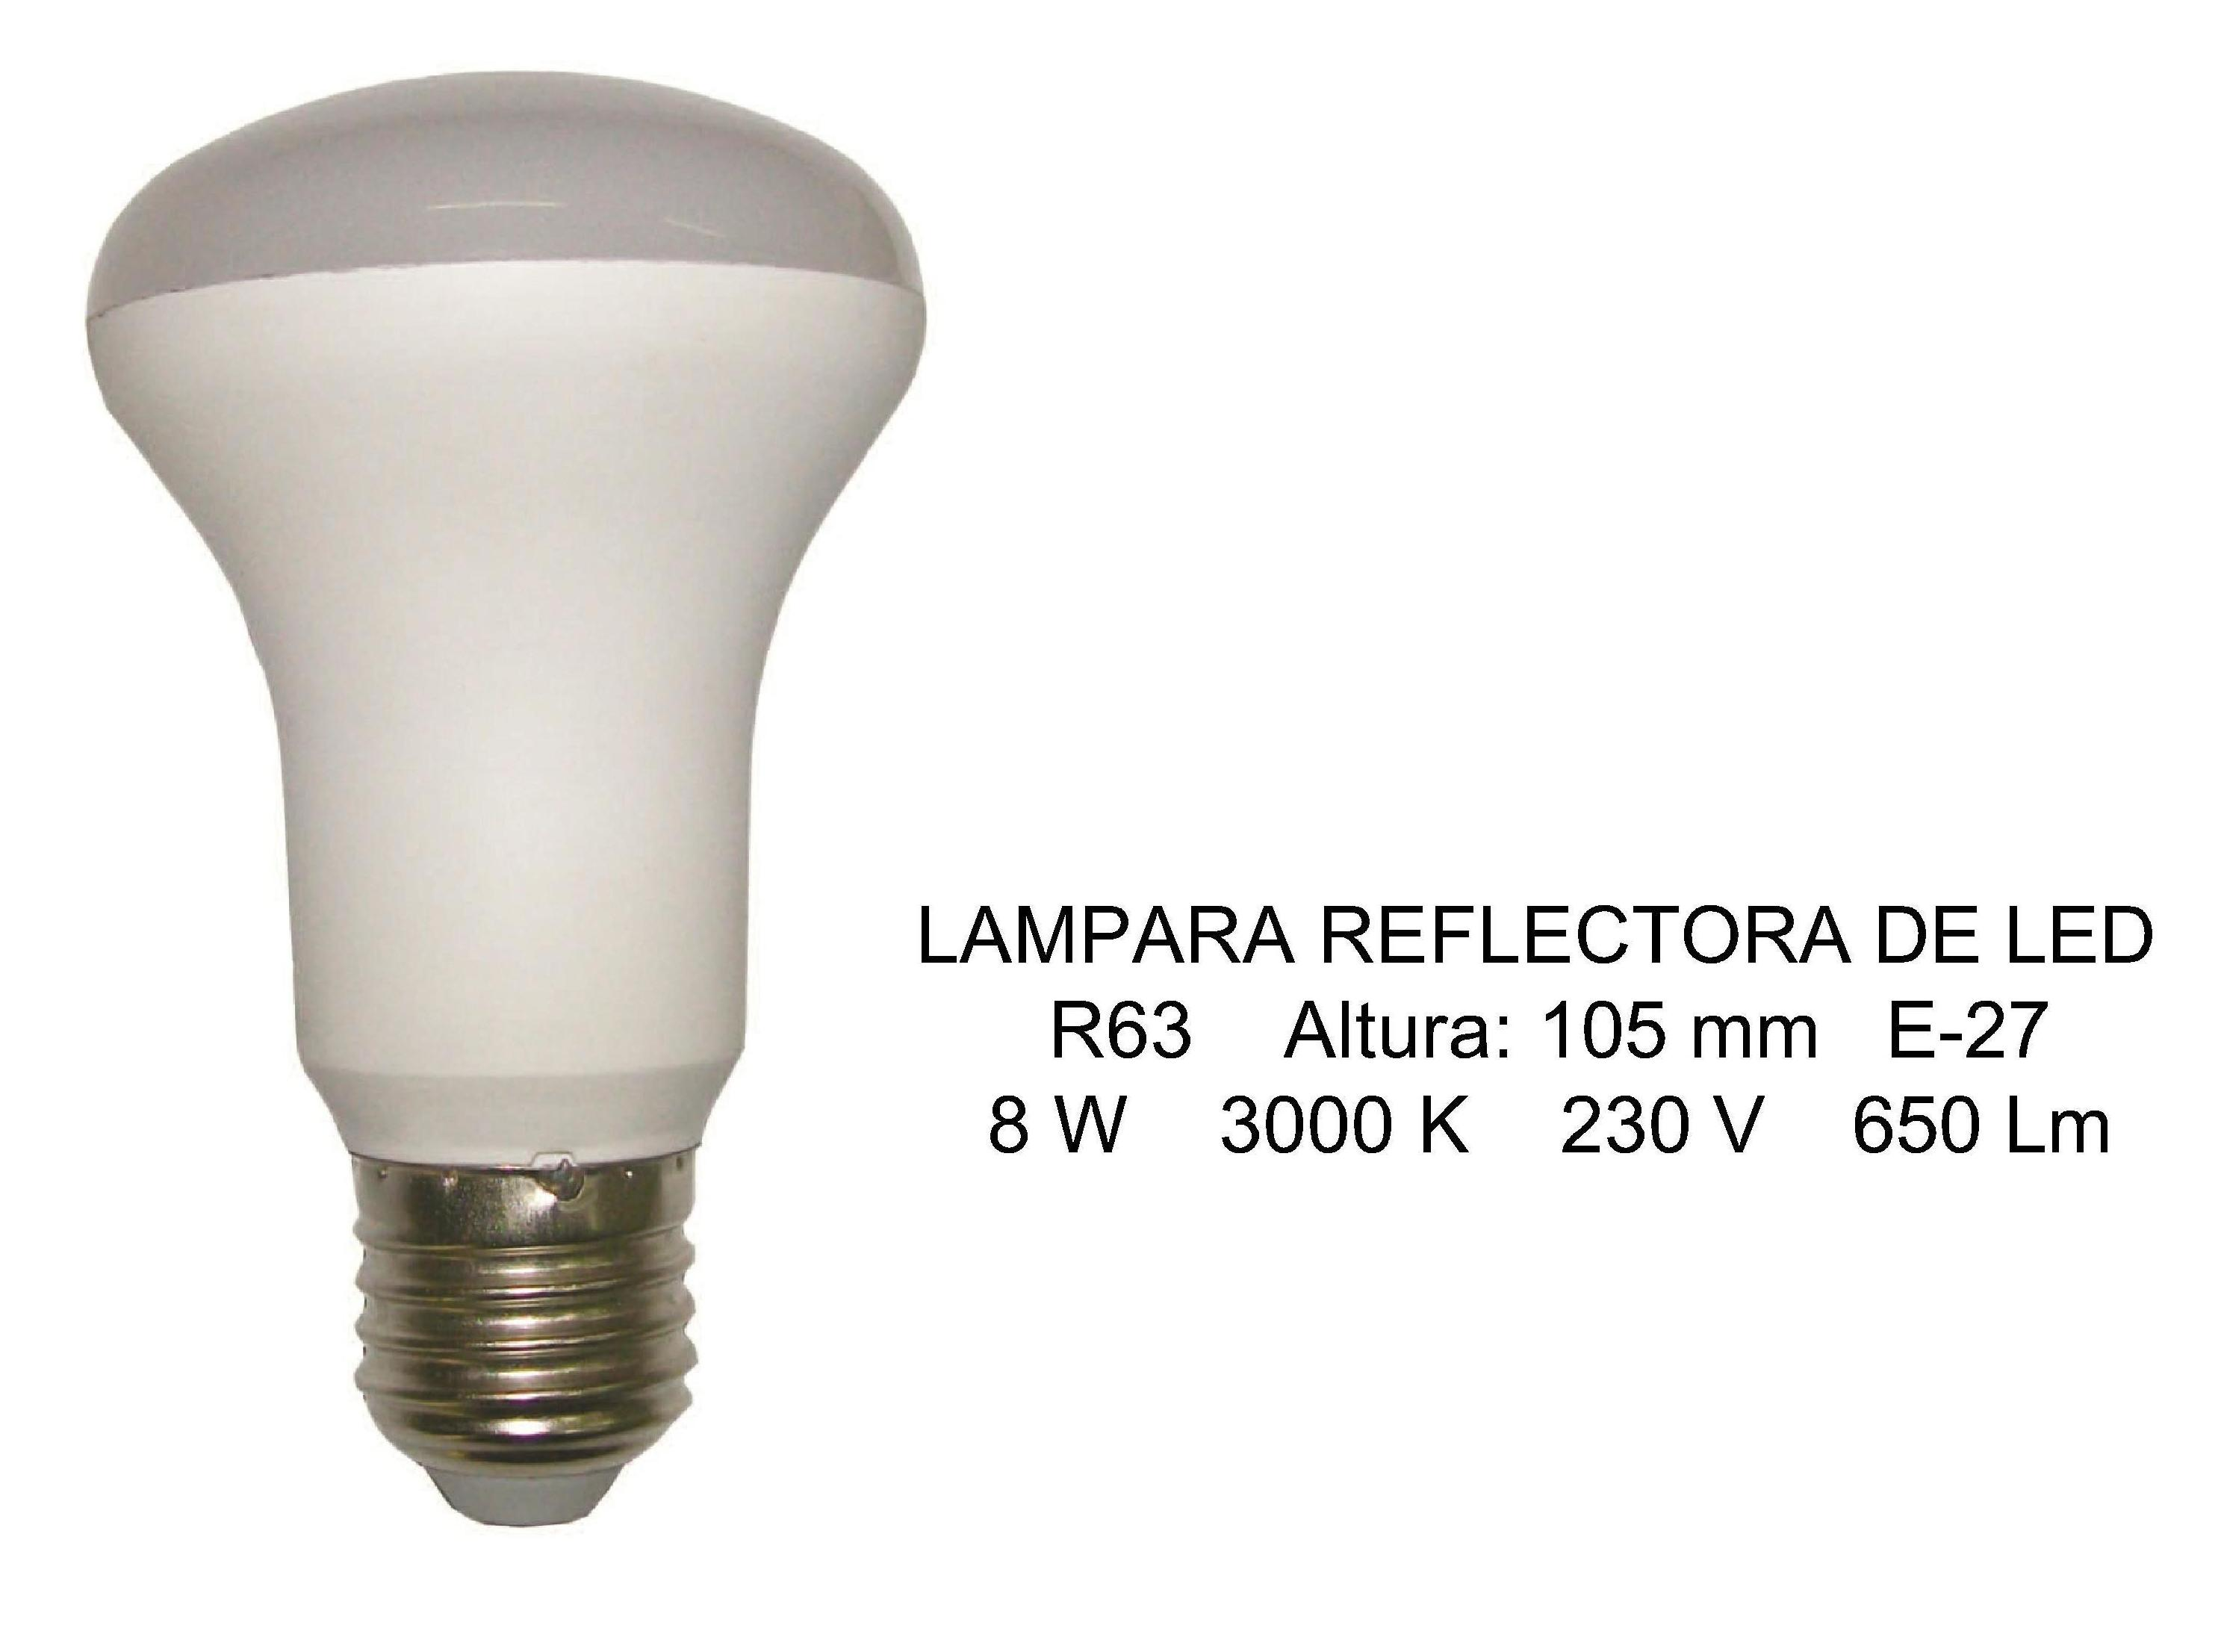 LAMPARA REFLECTORA LED R63 }}